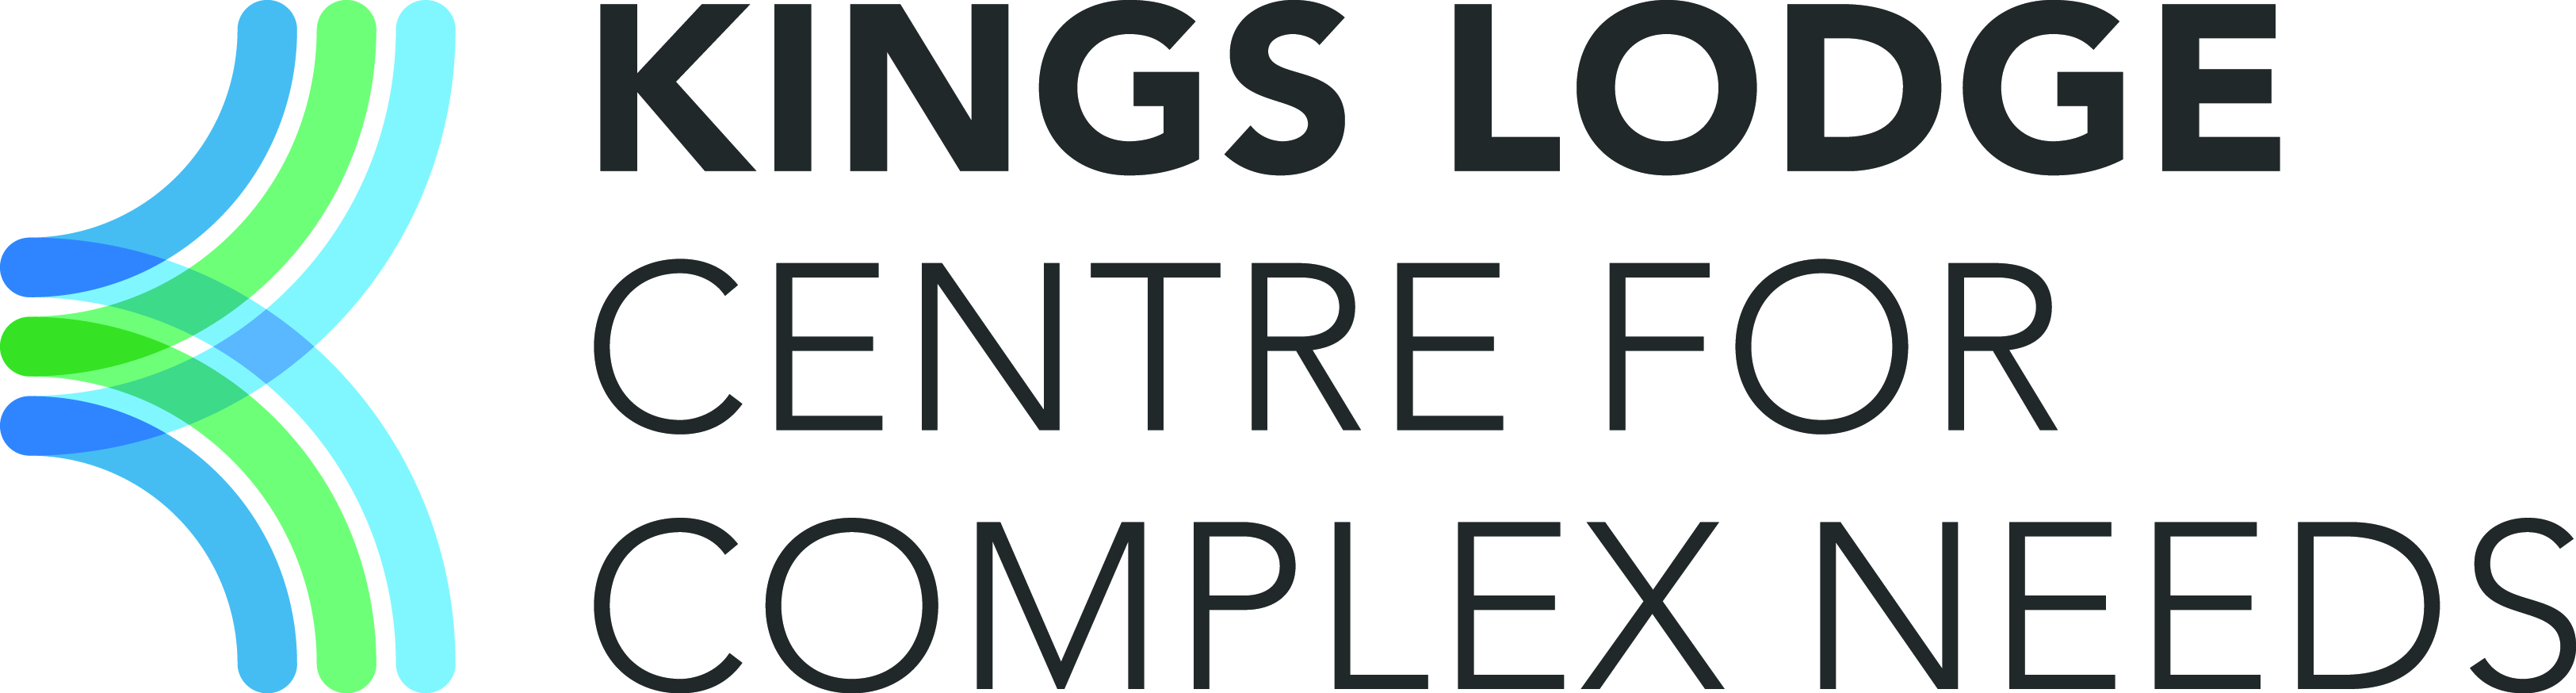 Kings Lodge Centre for Complex Needs, South Nutfield